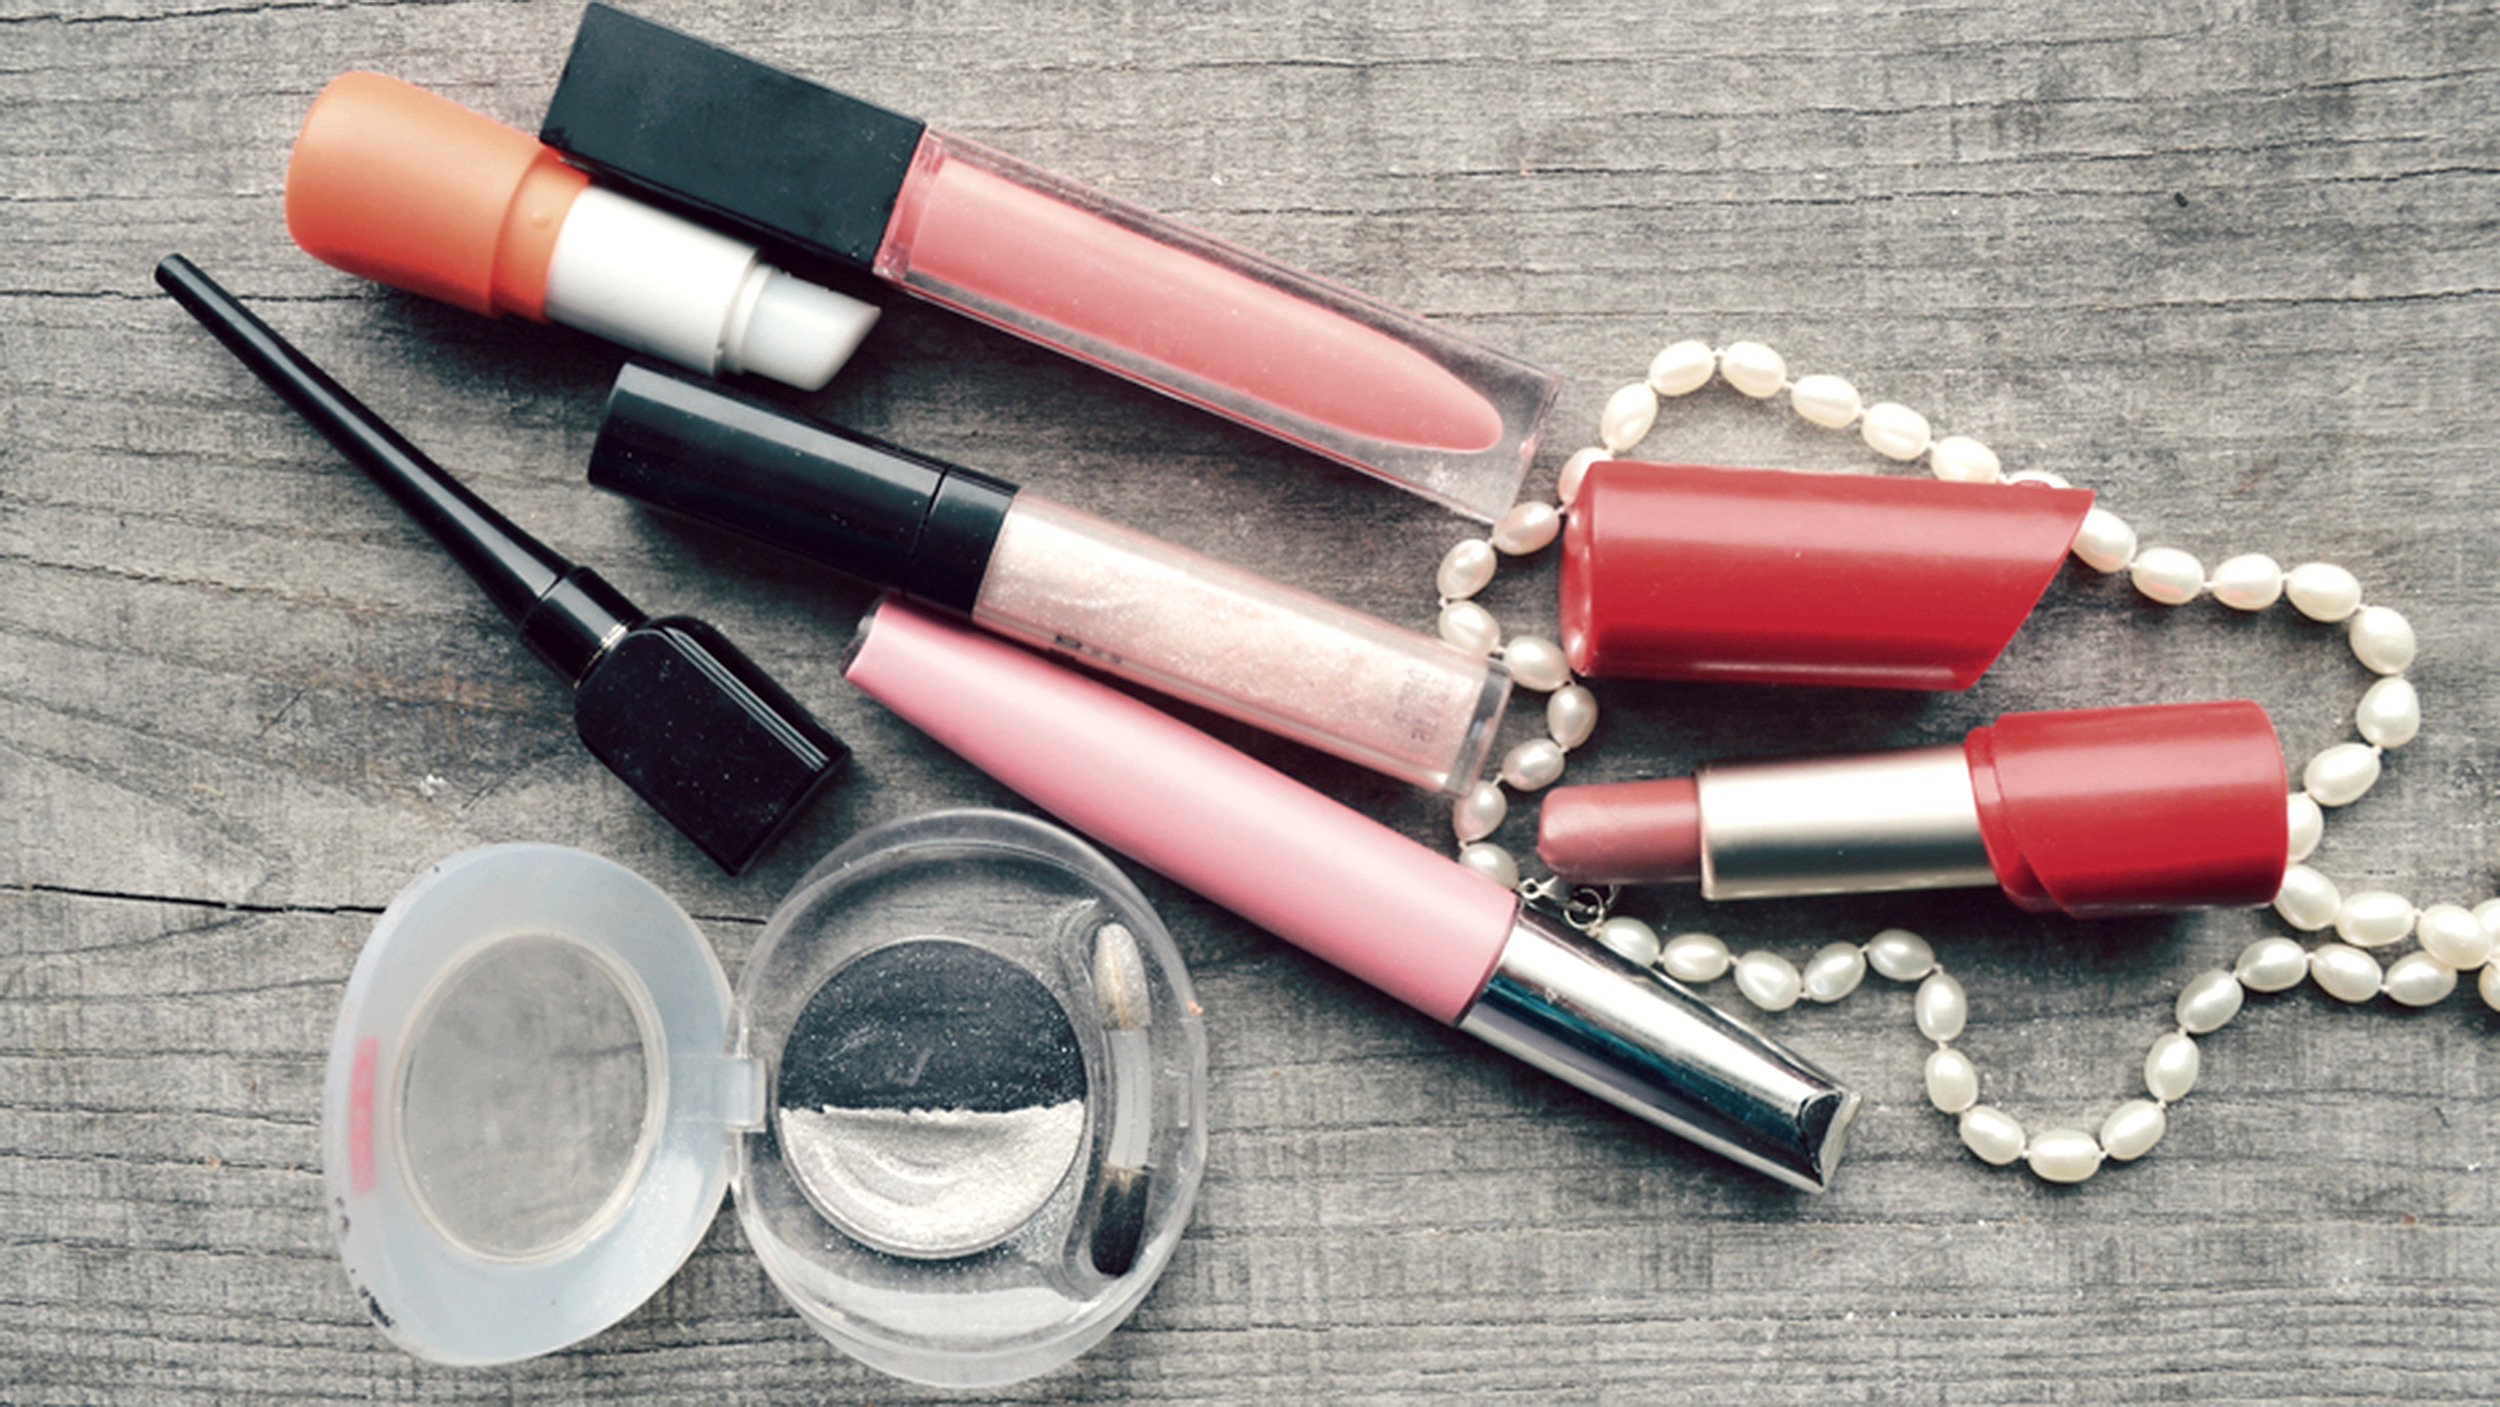 Is it time to throw out your makeup? 5 ways to know when to toss the